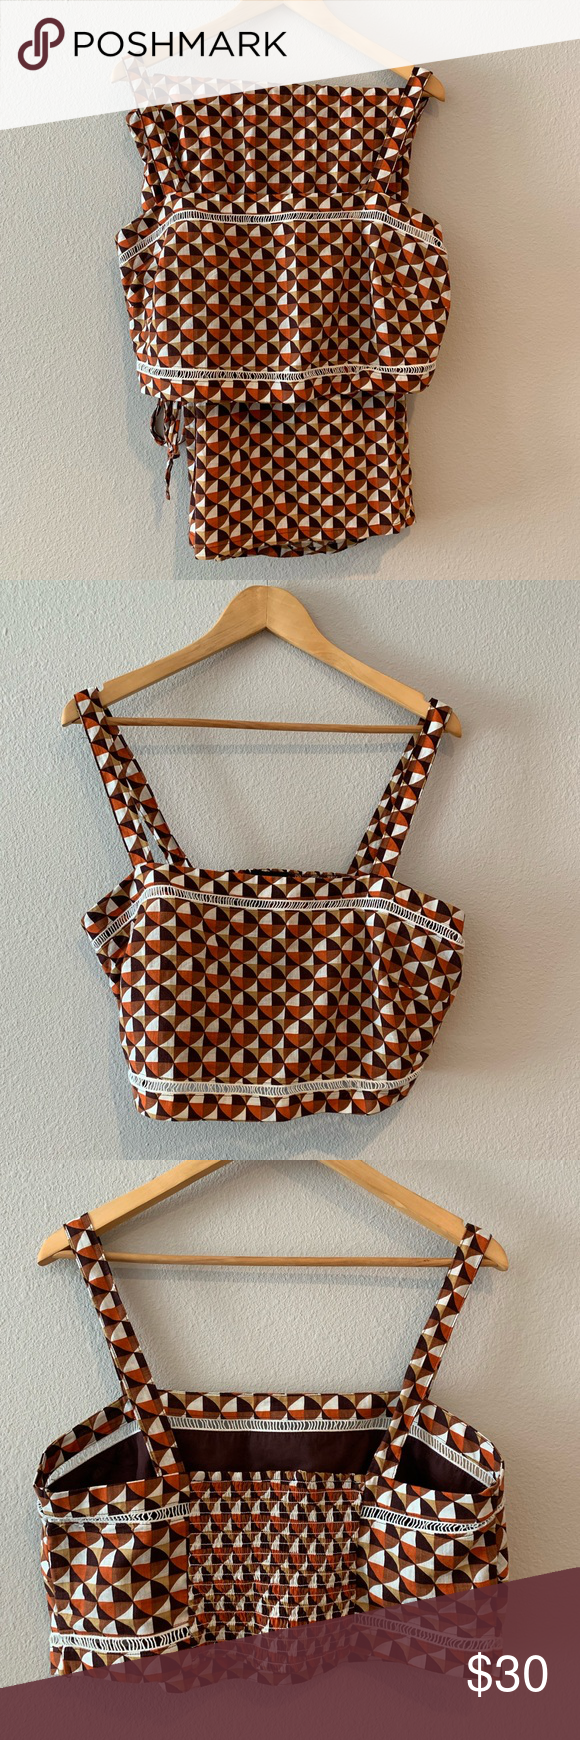 Forever 21 Crop Top Set Crop top set worn a couple of times. No signs of wear and in excellent condition. I bought it for a 70s themed birthday party and it was perfect!  Bottoms have drawstring and fit like an XL Forever 21 Other #70sthemeparties